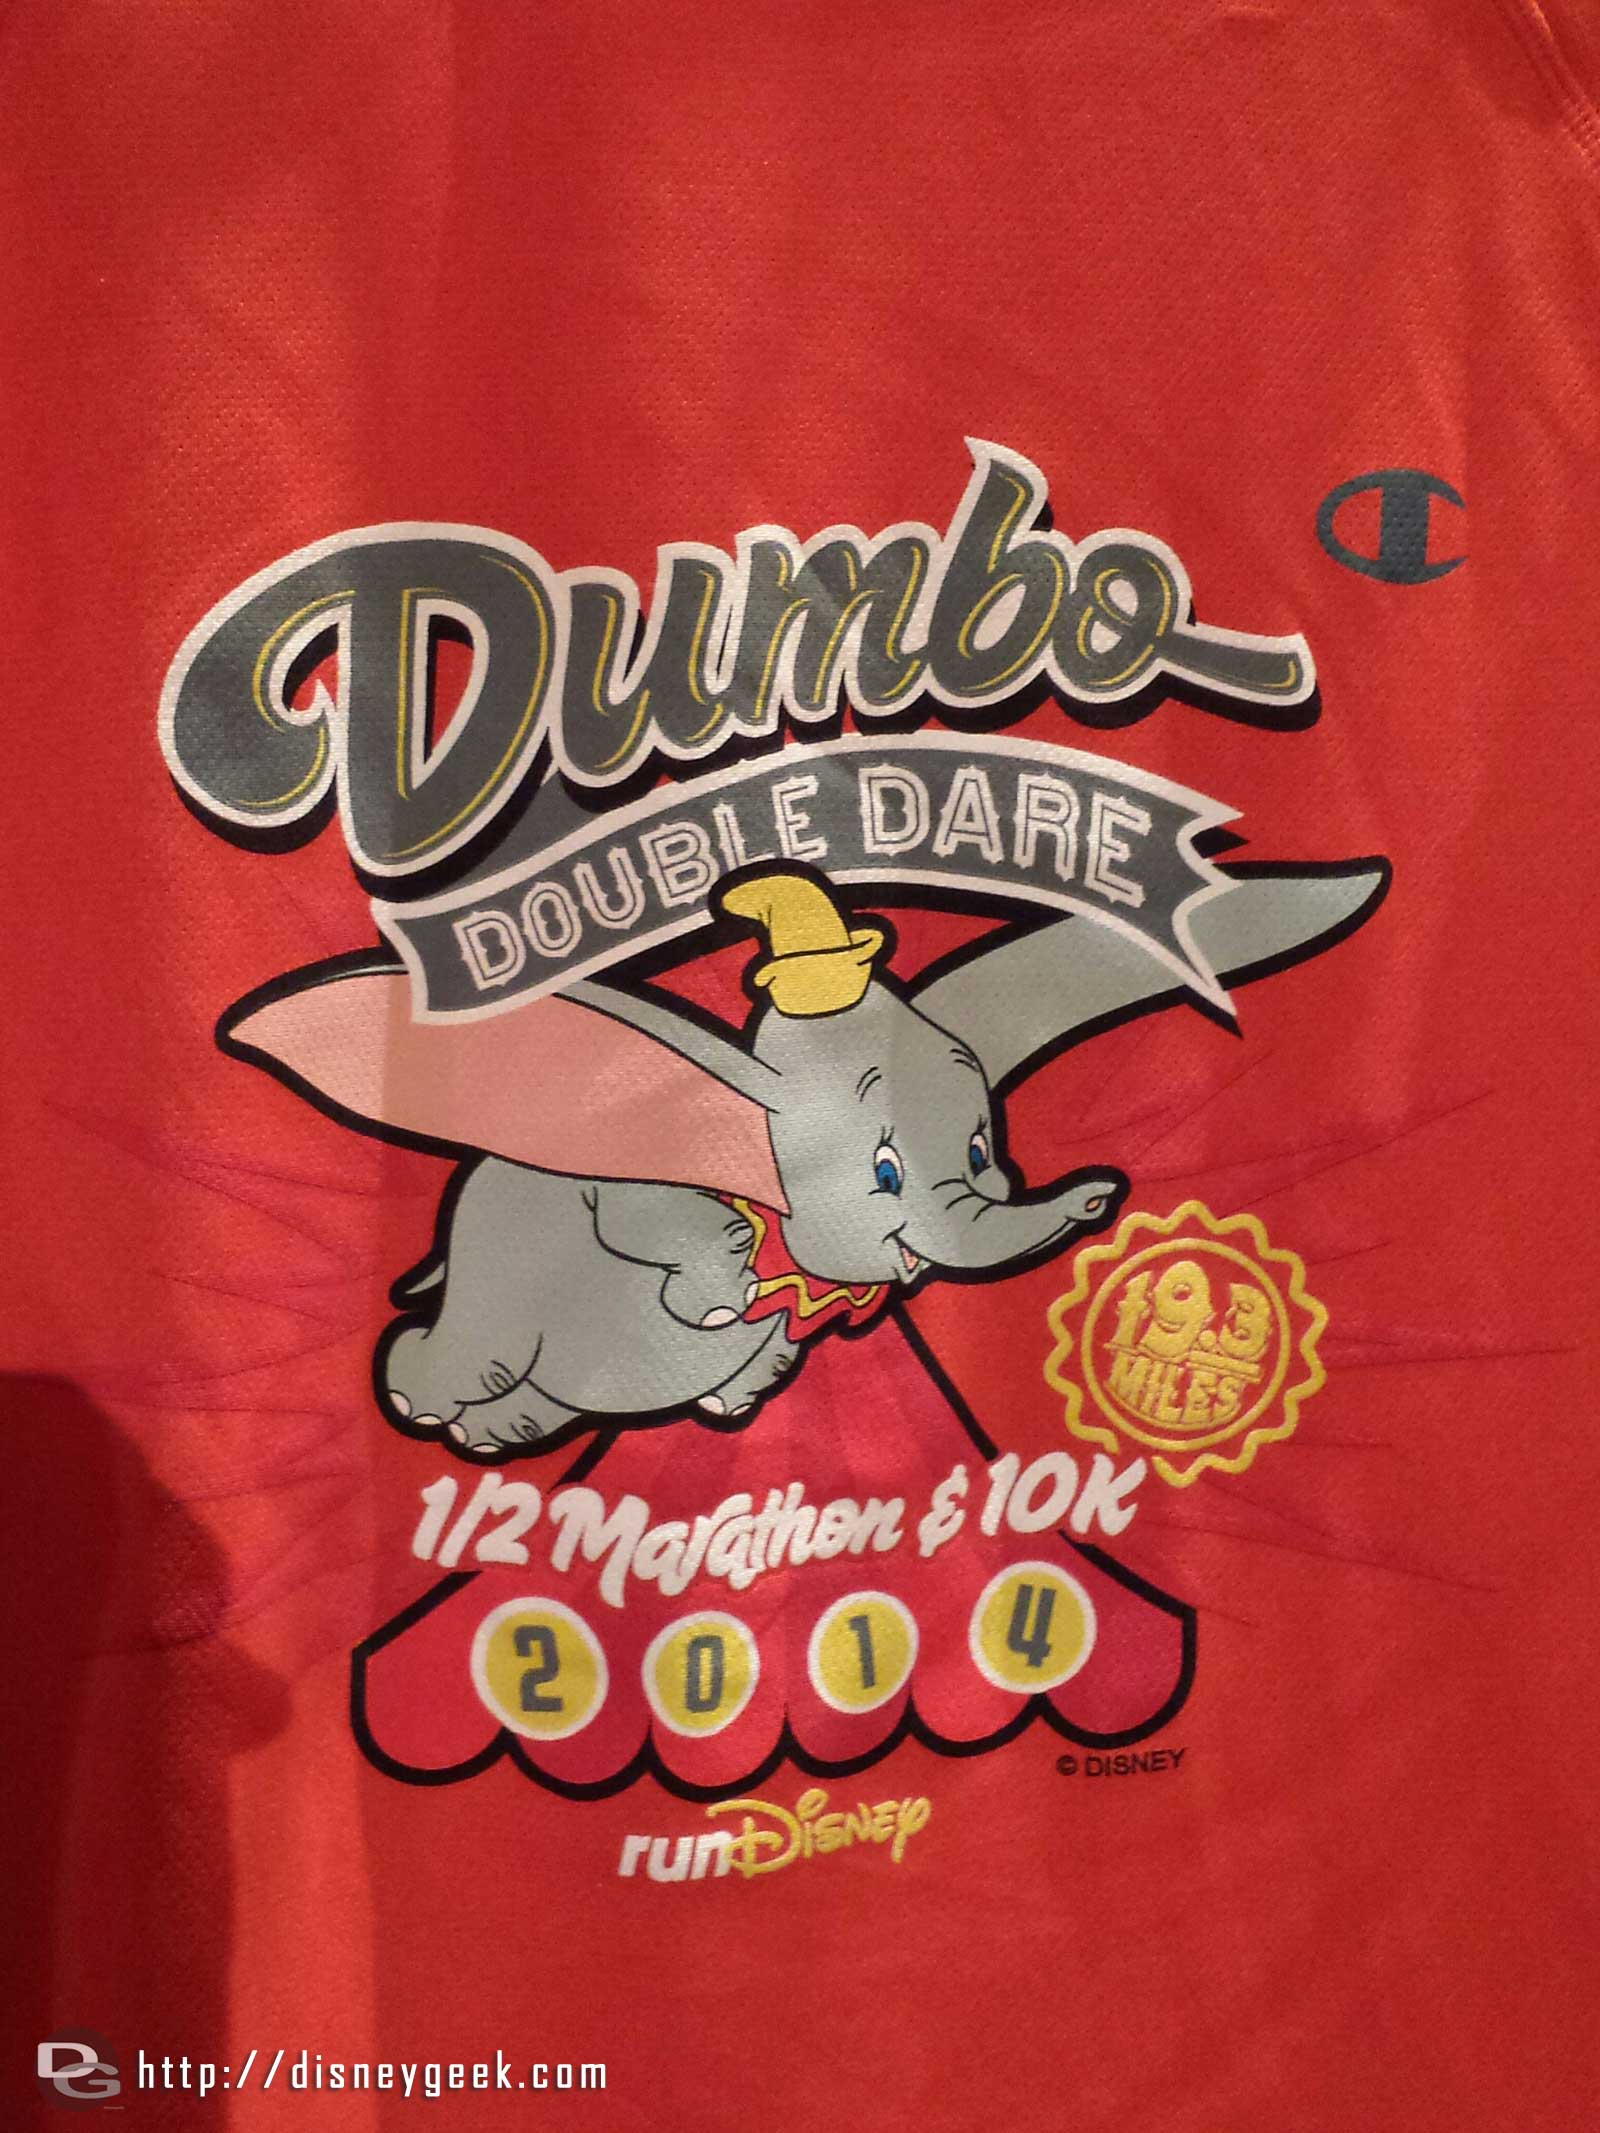 The Dumbo Double Dare shirt/logo